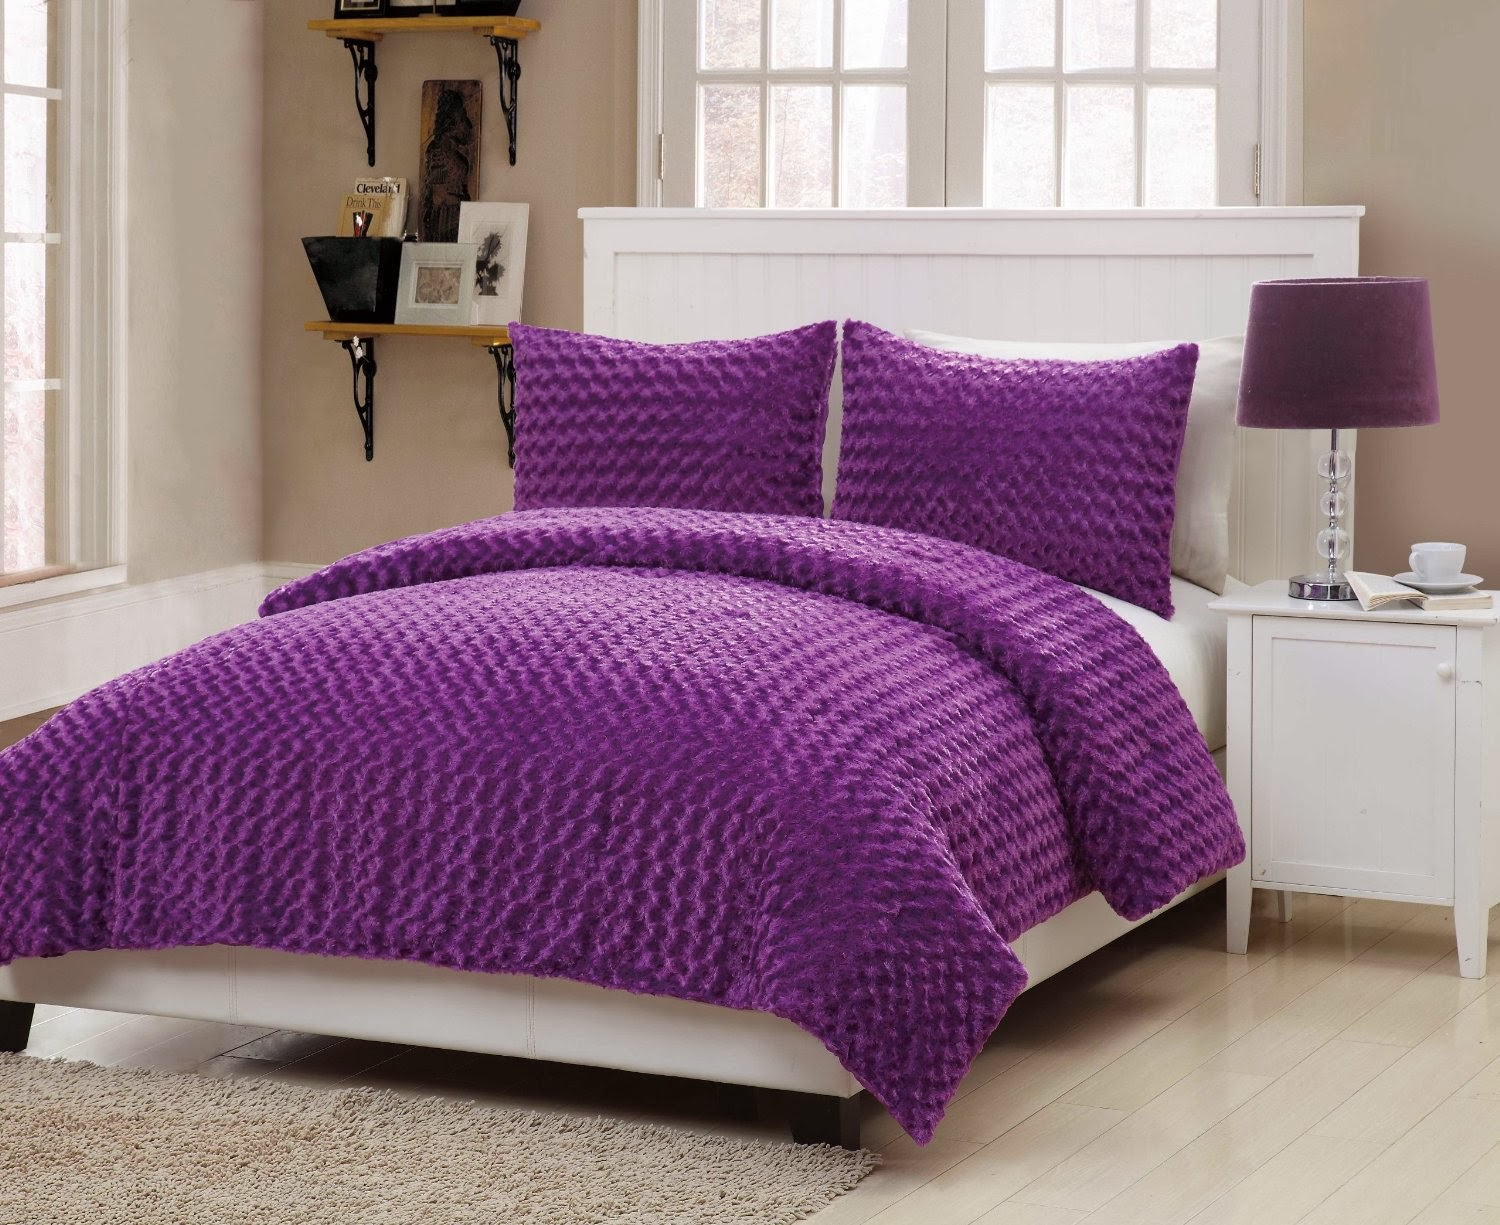 Purple Twin Comforter Sets | Purple Comforter Sets | Purple and Gold Comforter Set